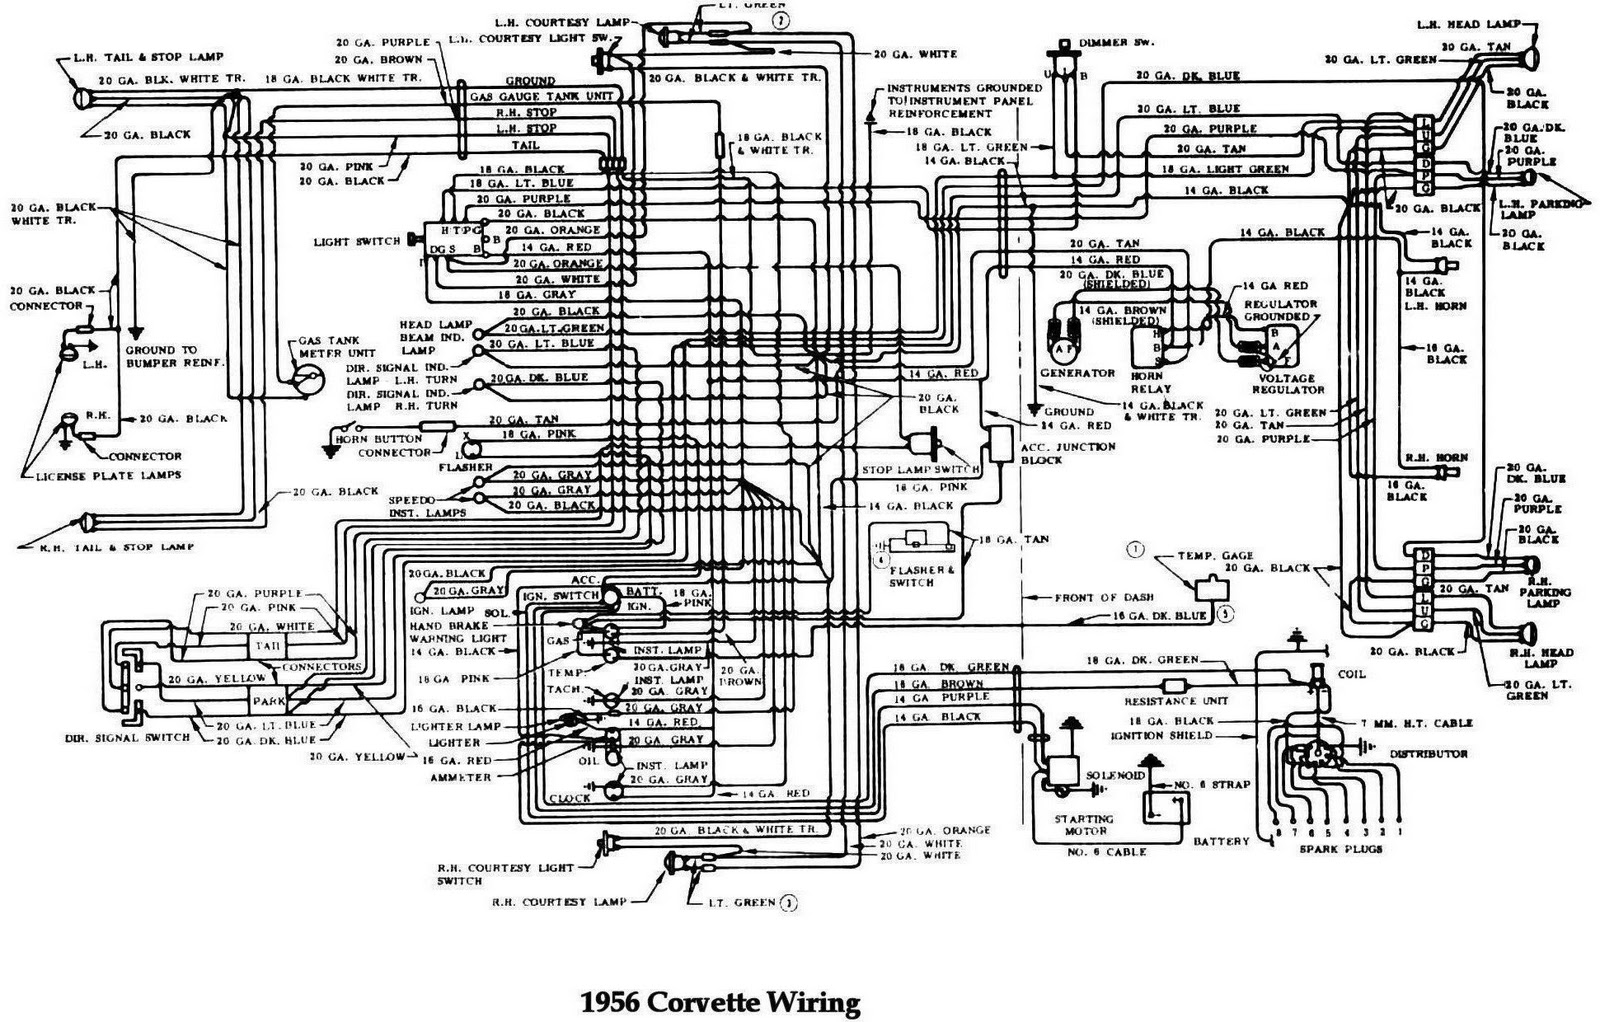 1956 Chevrolet Corvette Wiring Diagram | All about Wiring